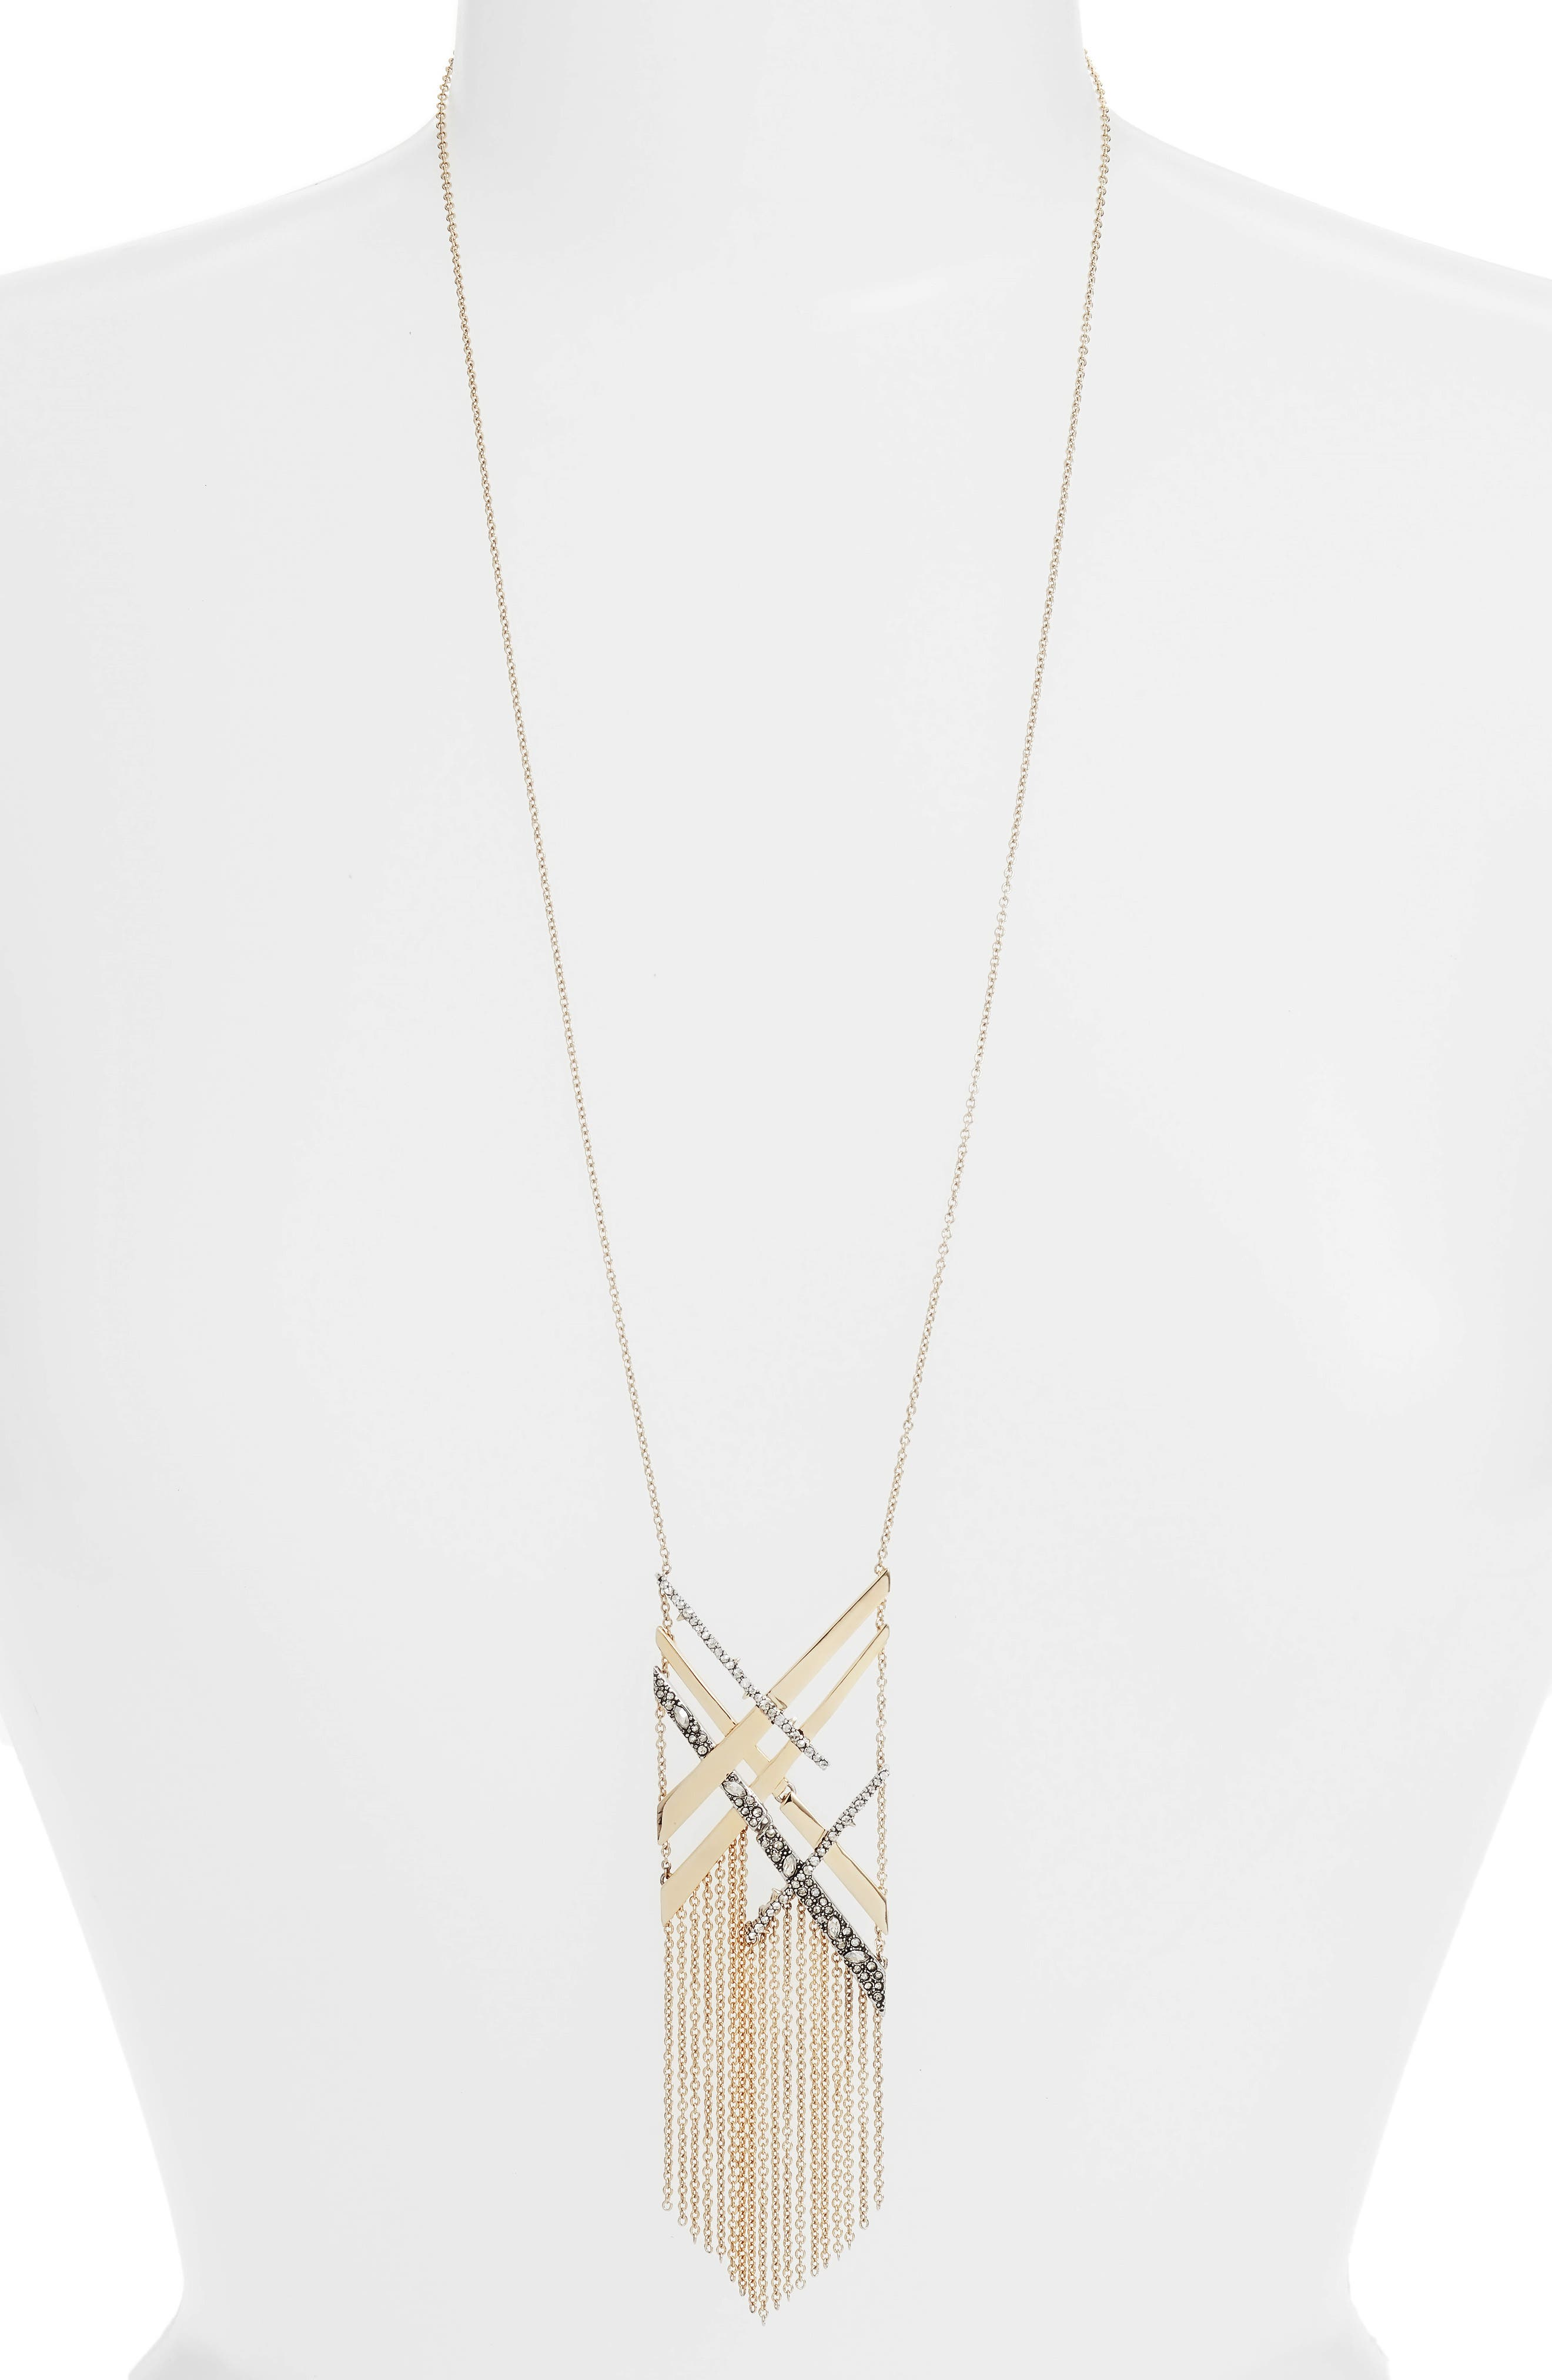 Plaid Tassel Necklace,                             Main thumbnail 1, color,                             Gold/ Silver